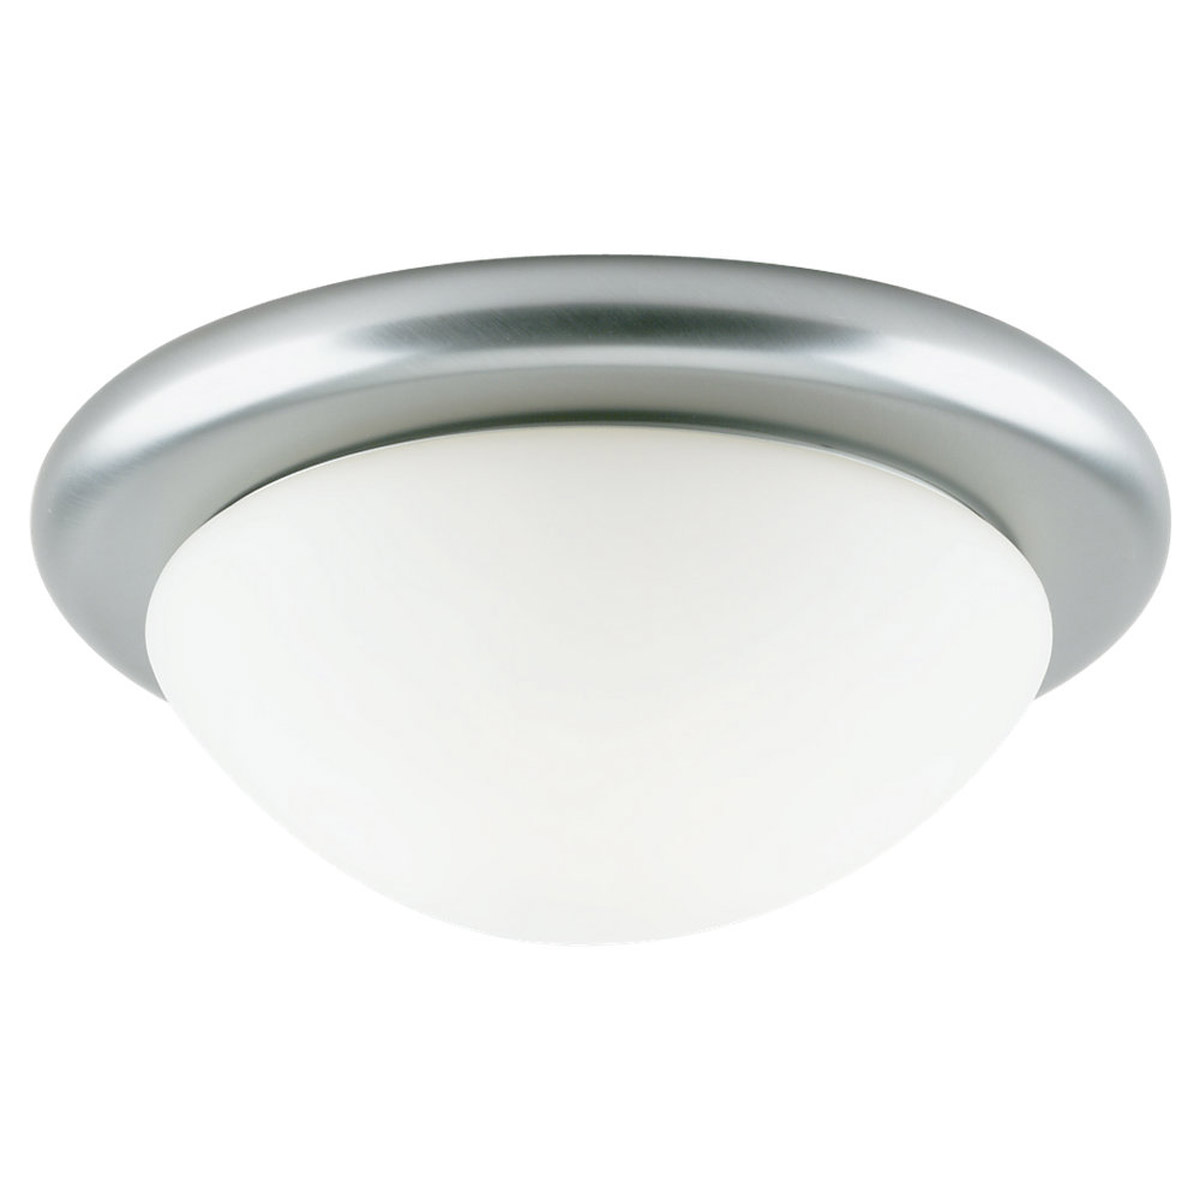 Sea Gull Lighting Twist-Lock Fitters 3 Light Flush Mount in Brushed Nickel 53074-962